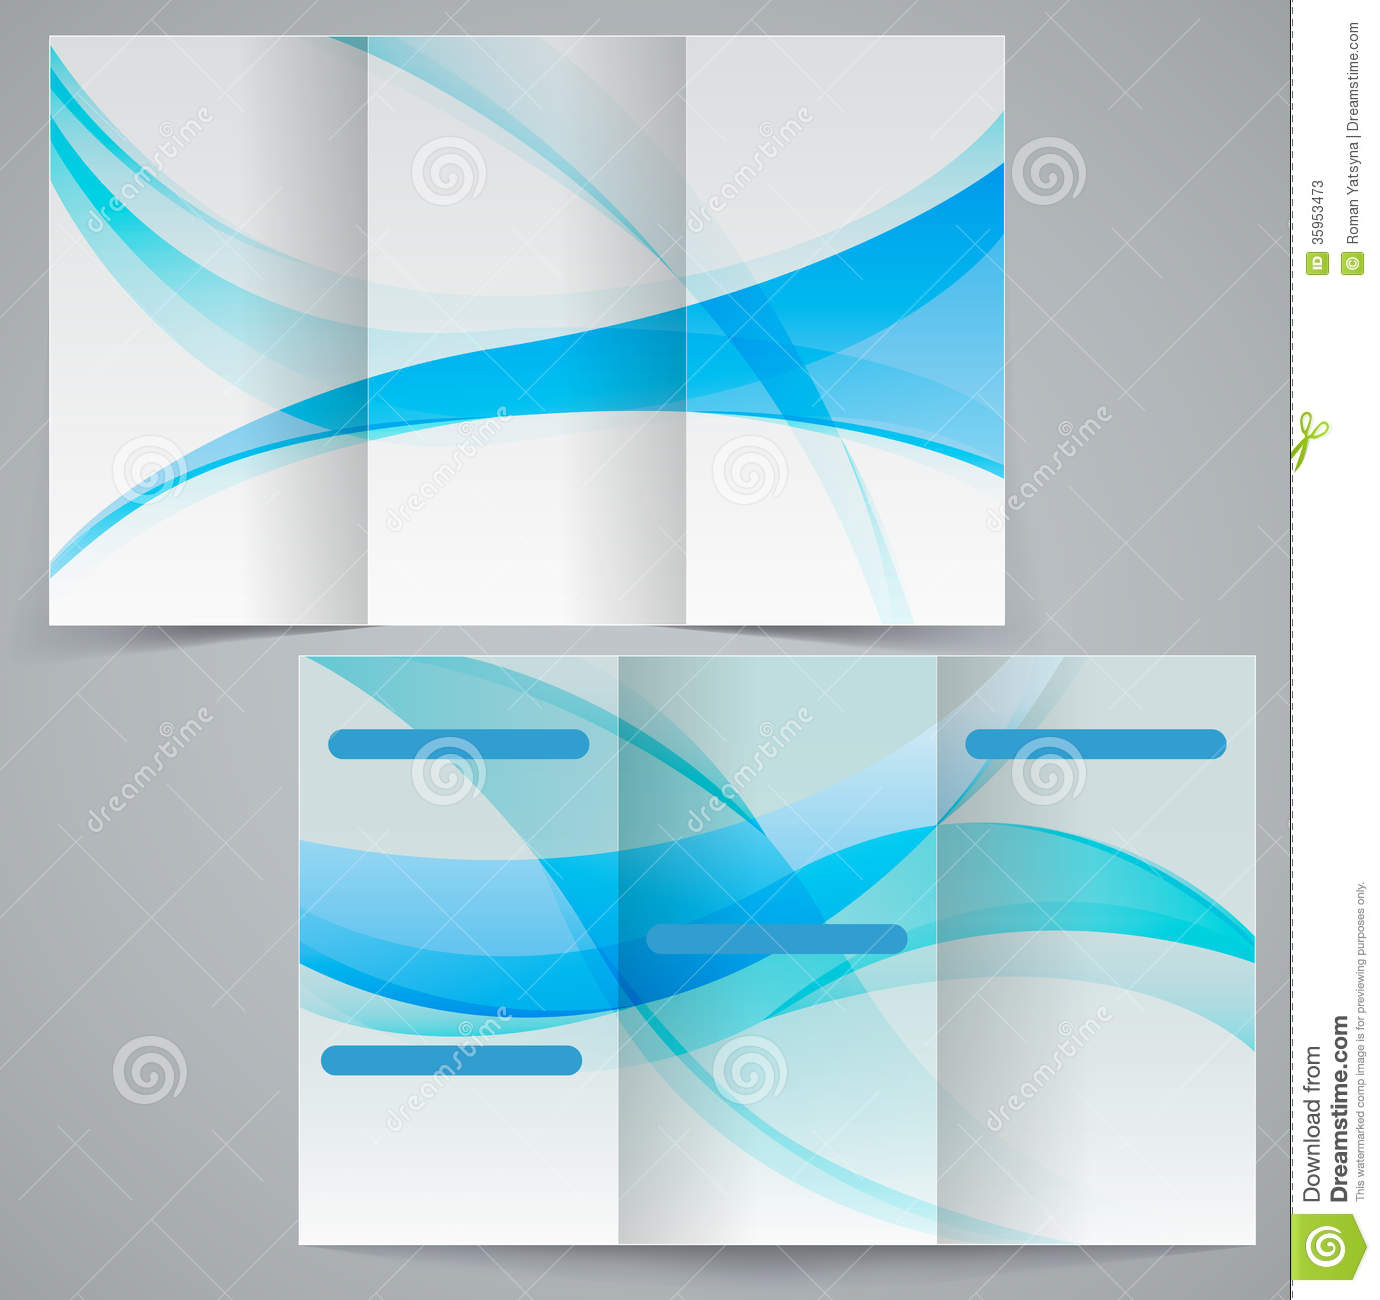 Tri fold business brochure template vector blue d stock for Background brochure templates